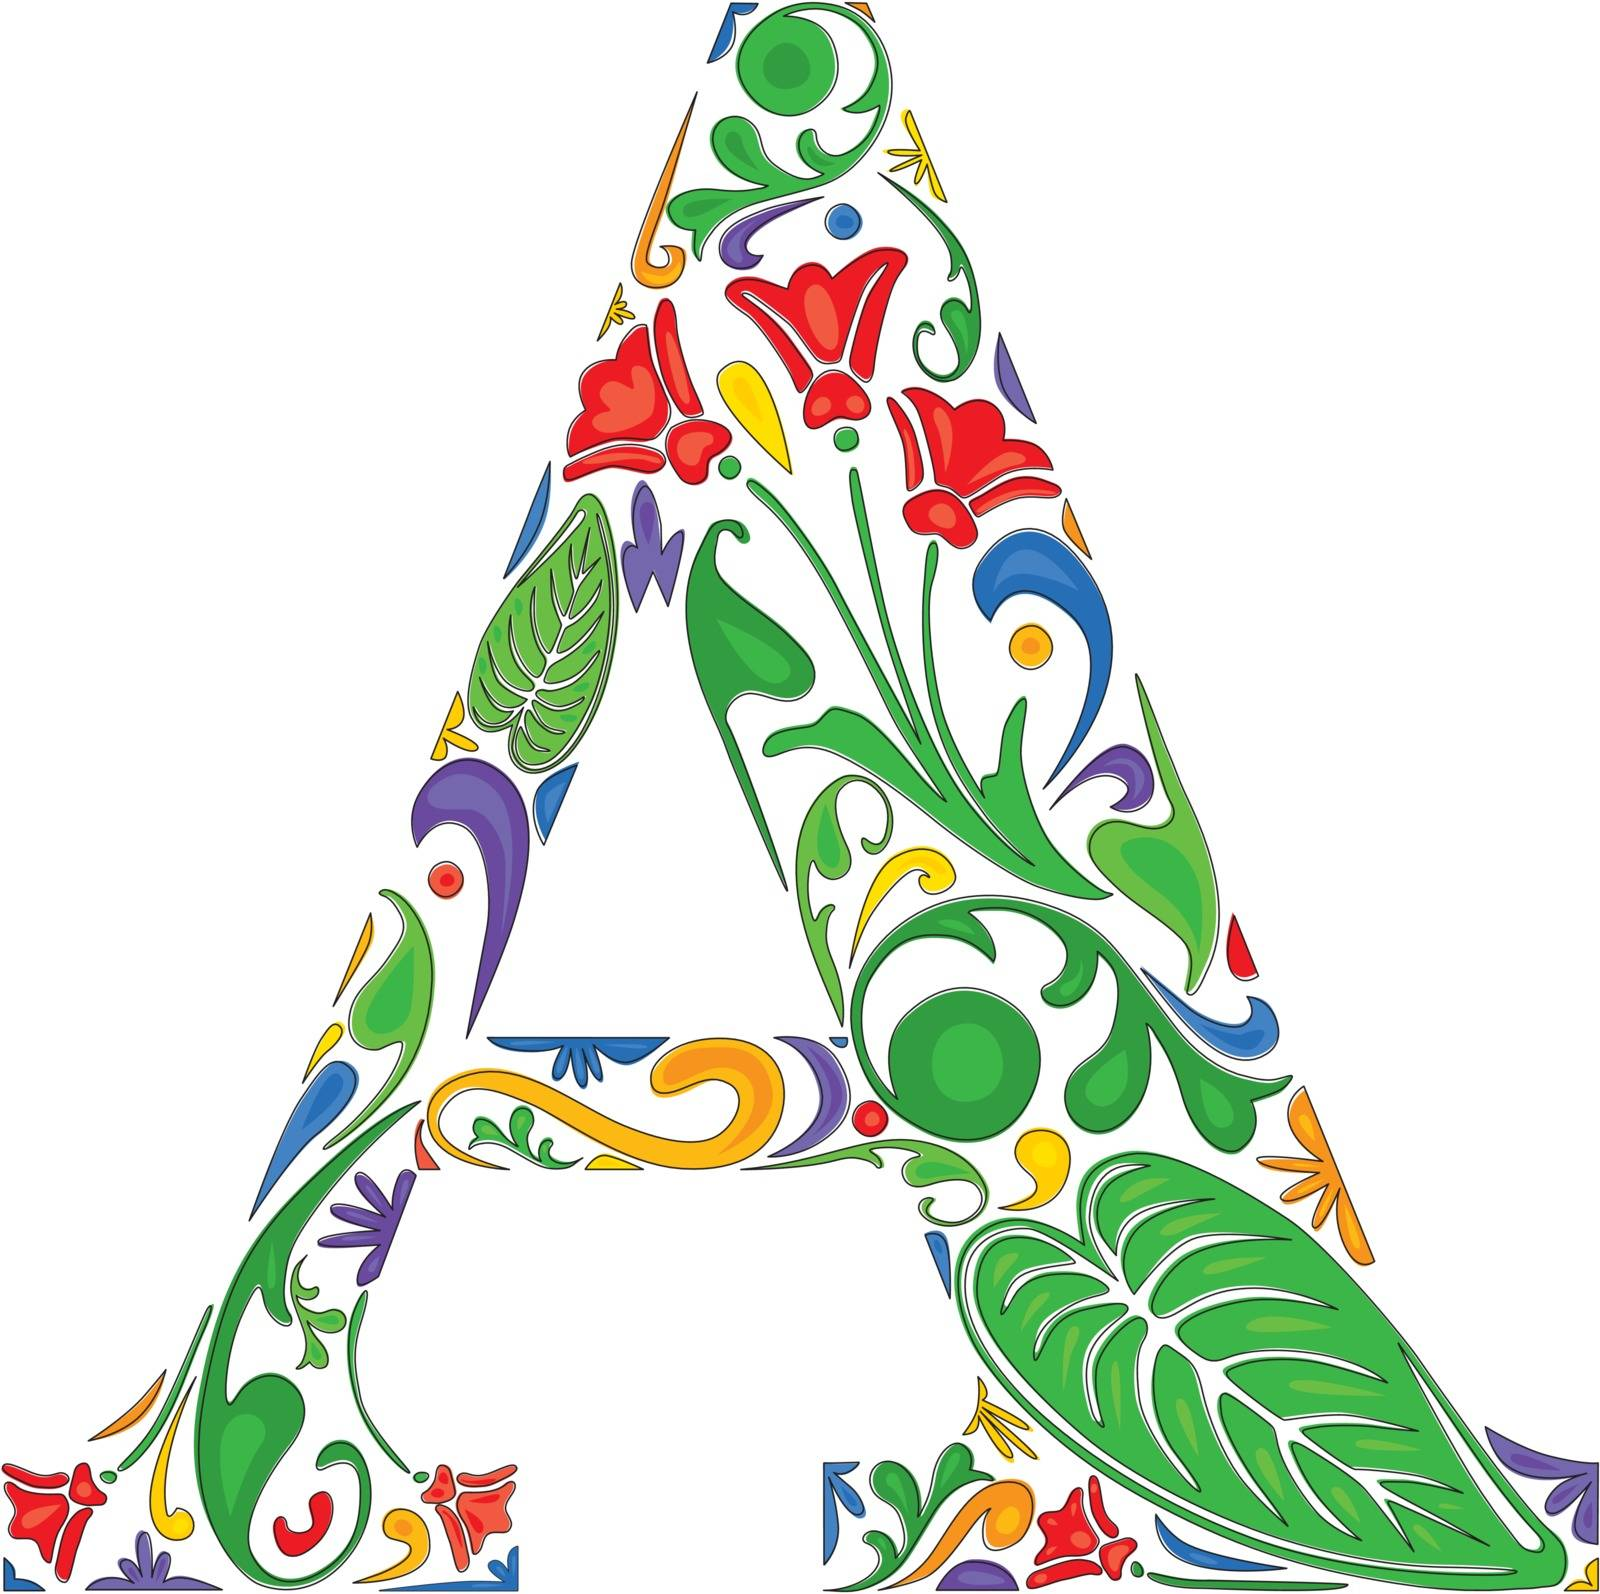 Colorful floral initial capital letter A